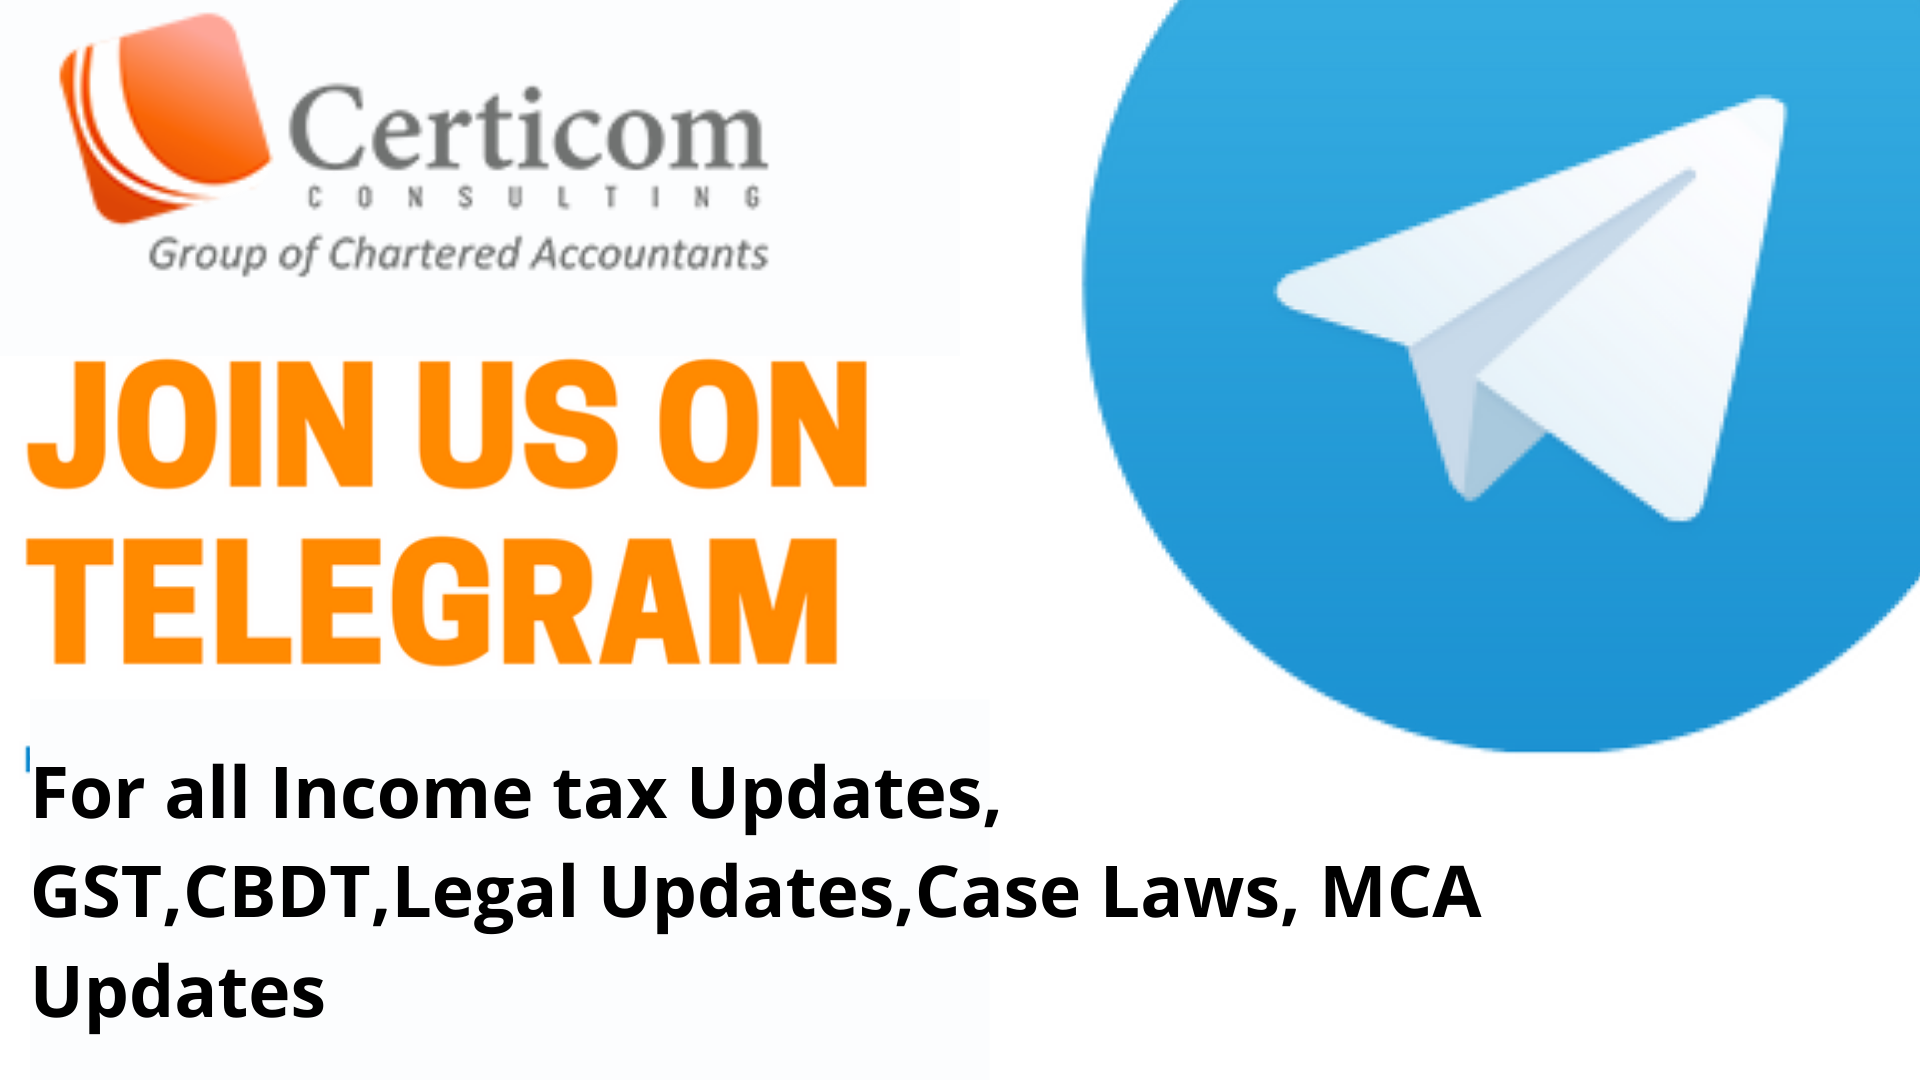 Join Us On Telegram For All For All Income Tax Updates Gst Cbdt Legal Updates Case Laws Mca Accounting Services Consulting Business Chartered Accountant